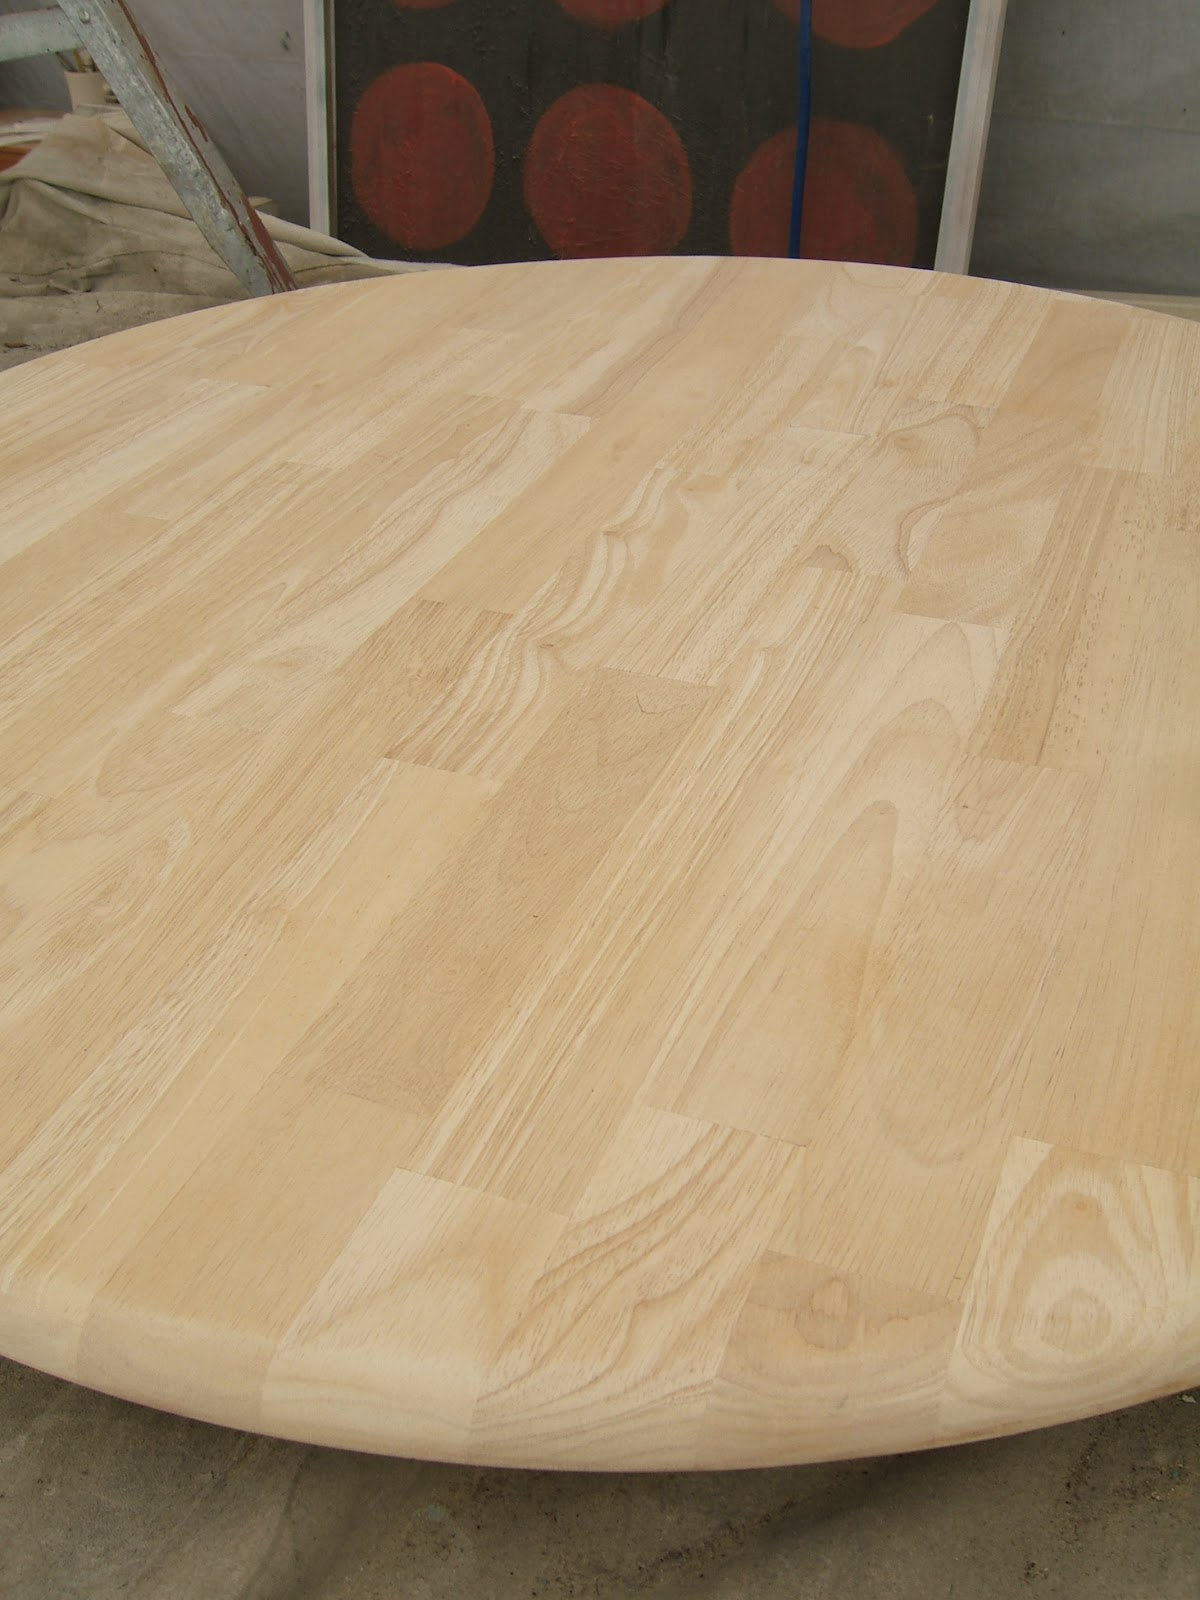 Nine Red School of Restoration Striped Round Table